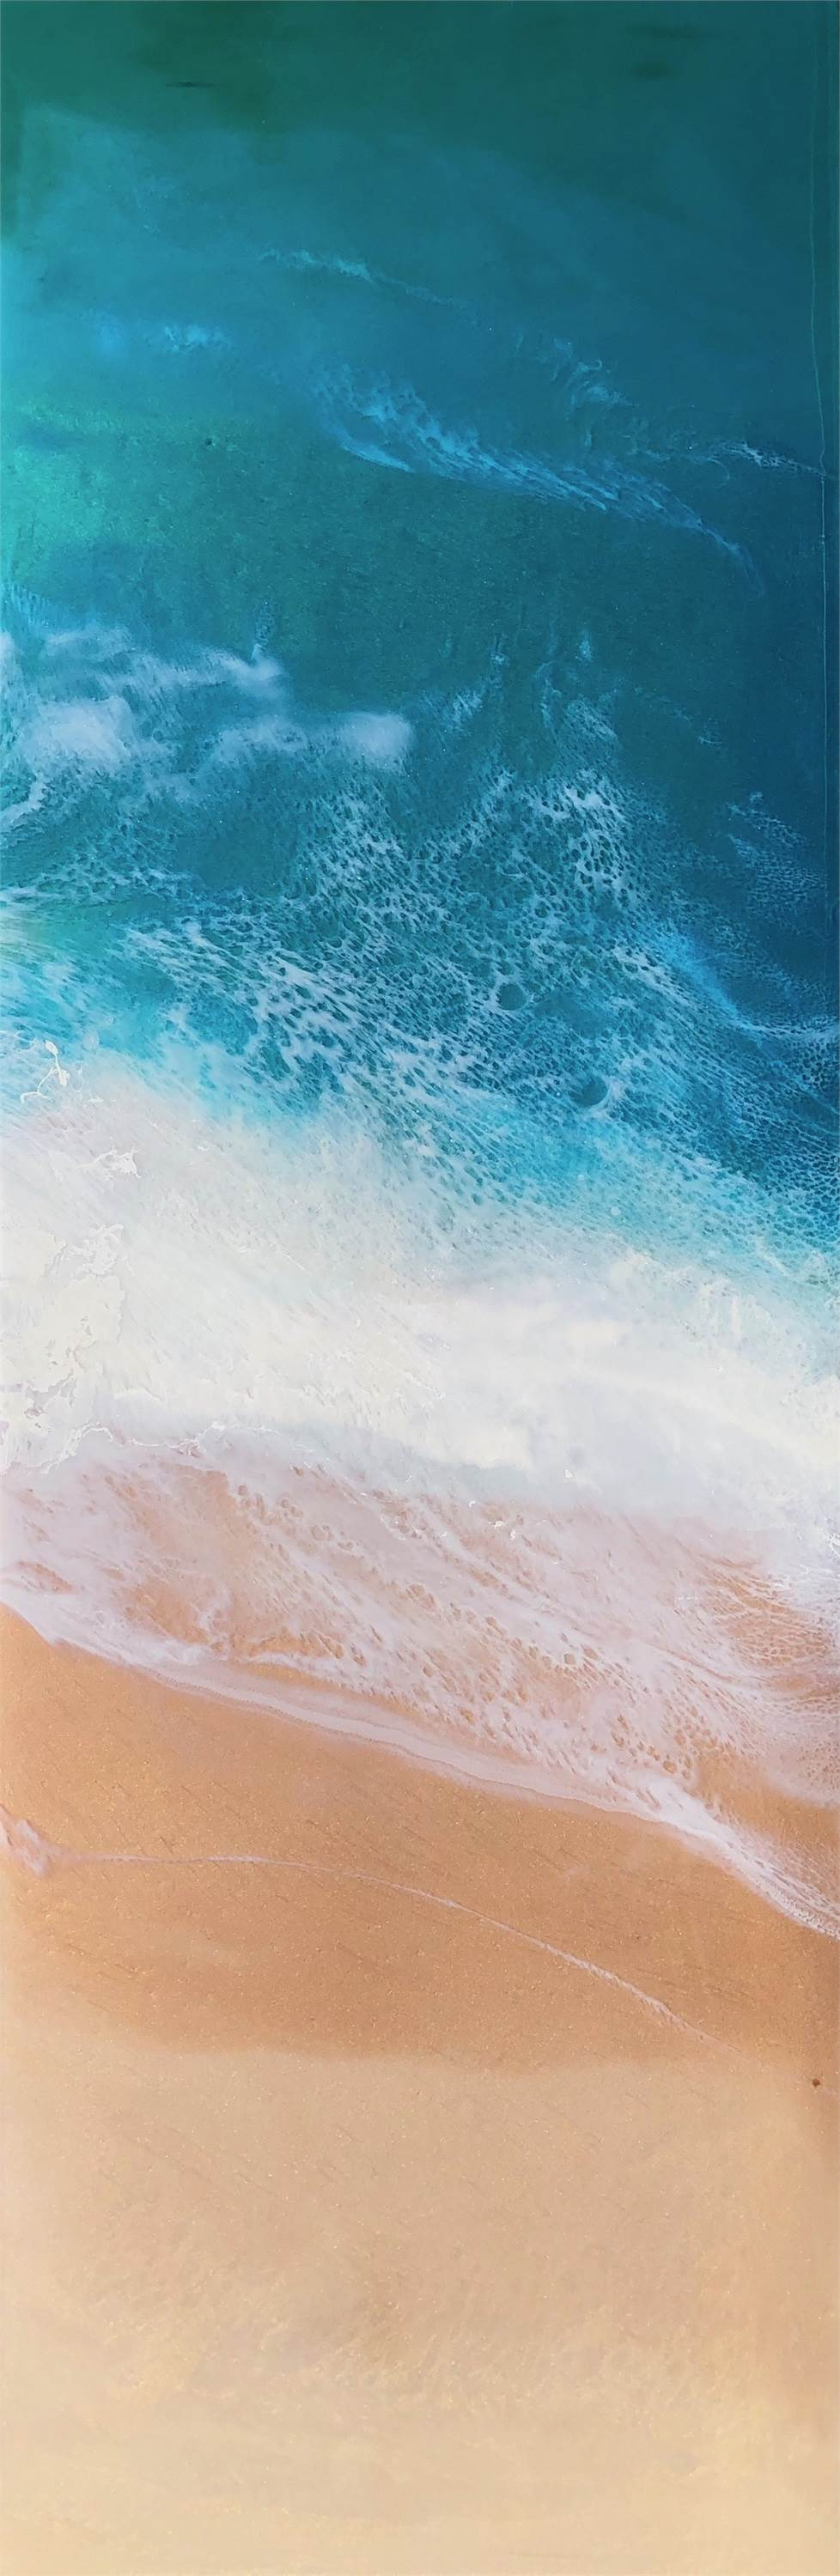 Lulling of the Sea, original Nature Mixed Technique Painting by Tiffani Buteau